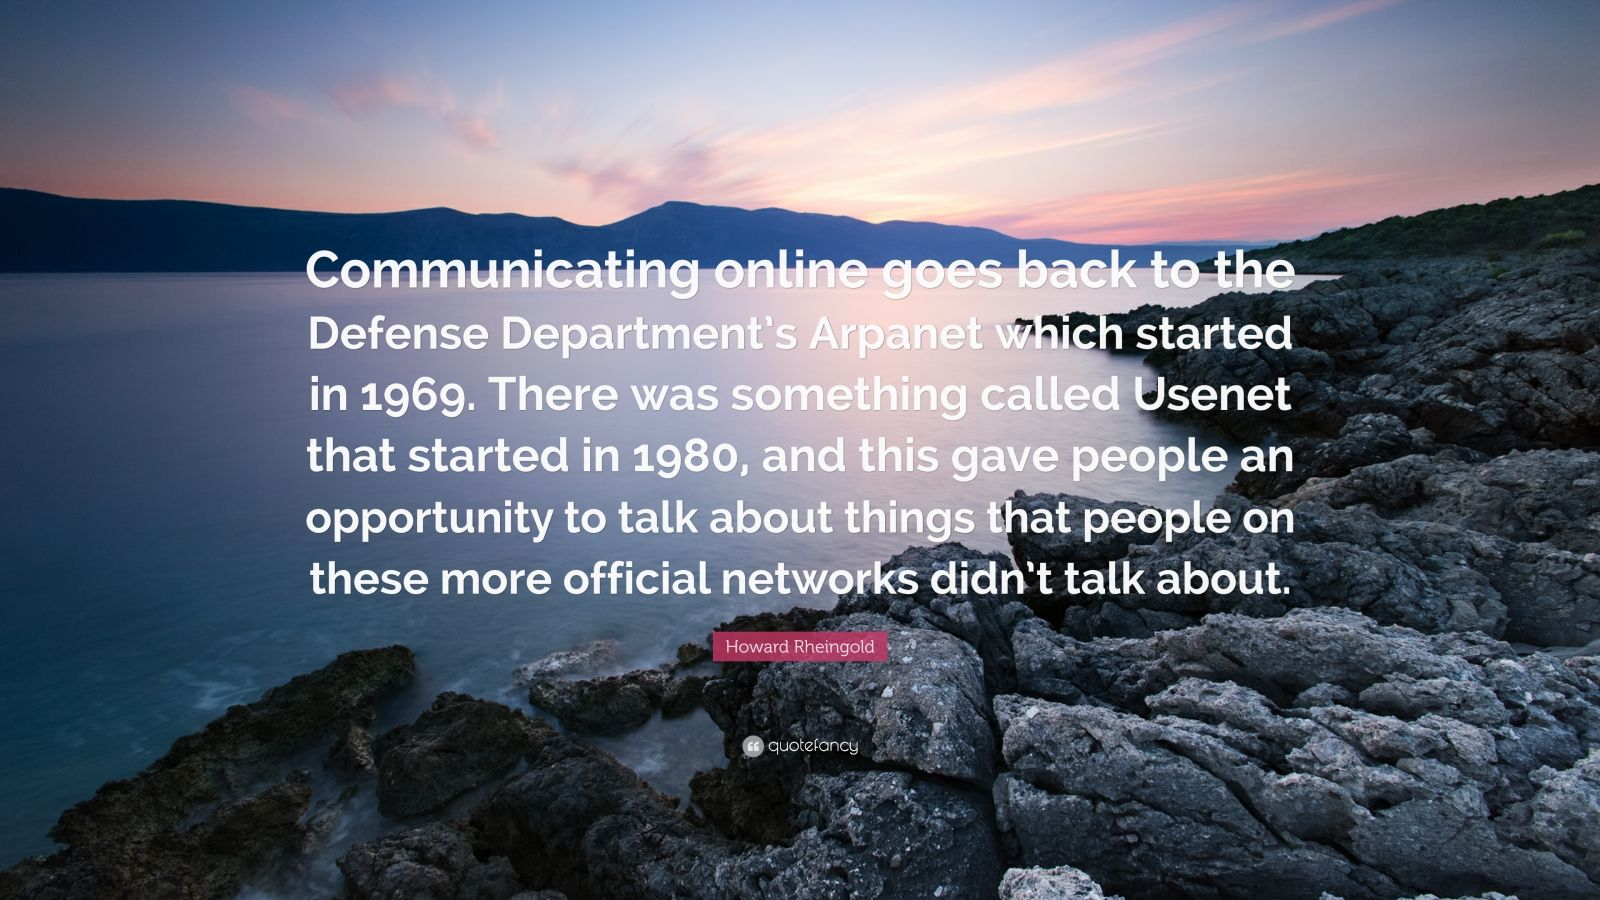 """Howard Rheingold Quote: """"Communicating online goes back to the Defense Department's Arpanet which started in 1969. There was something called Usenet that started in 1980, and this gave people an opportunity to talk about things that people on these more official networks didn't talk about."""""""